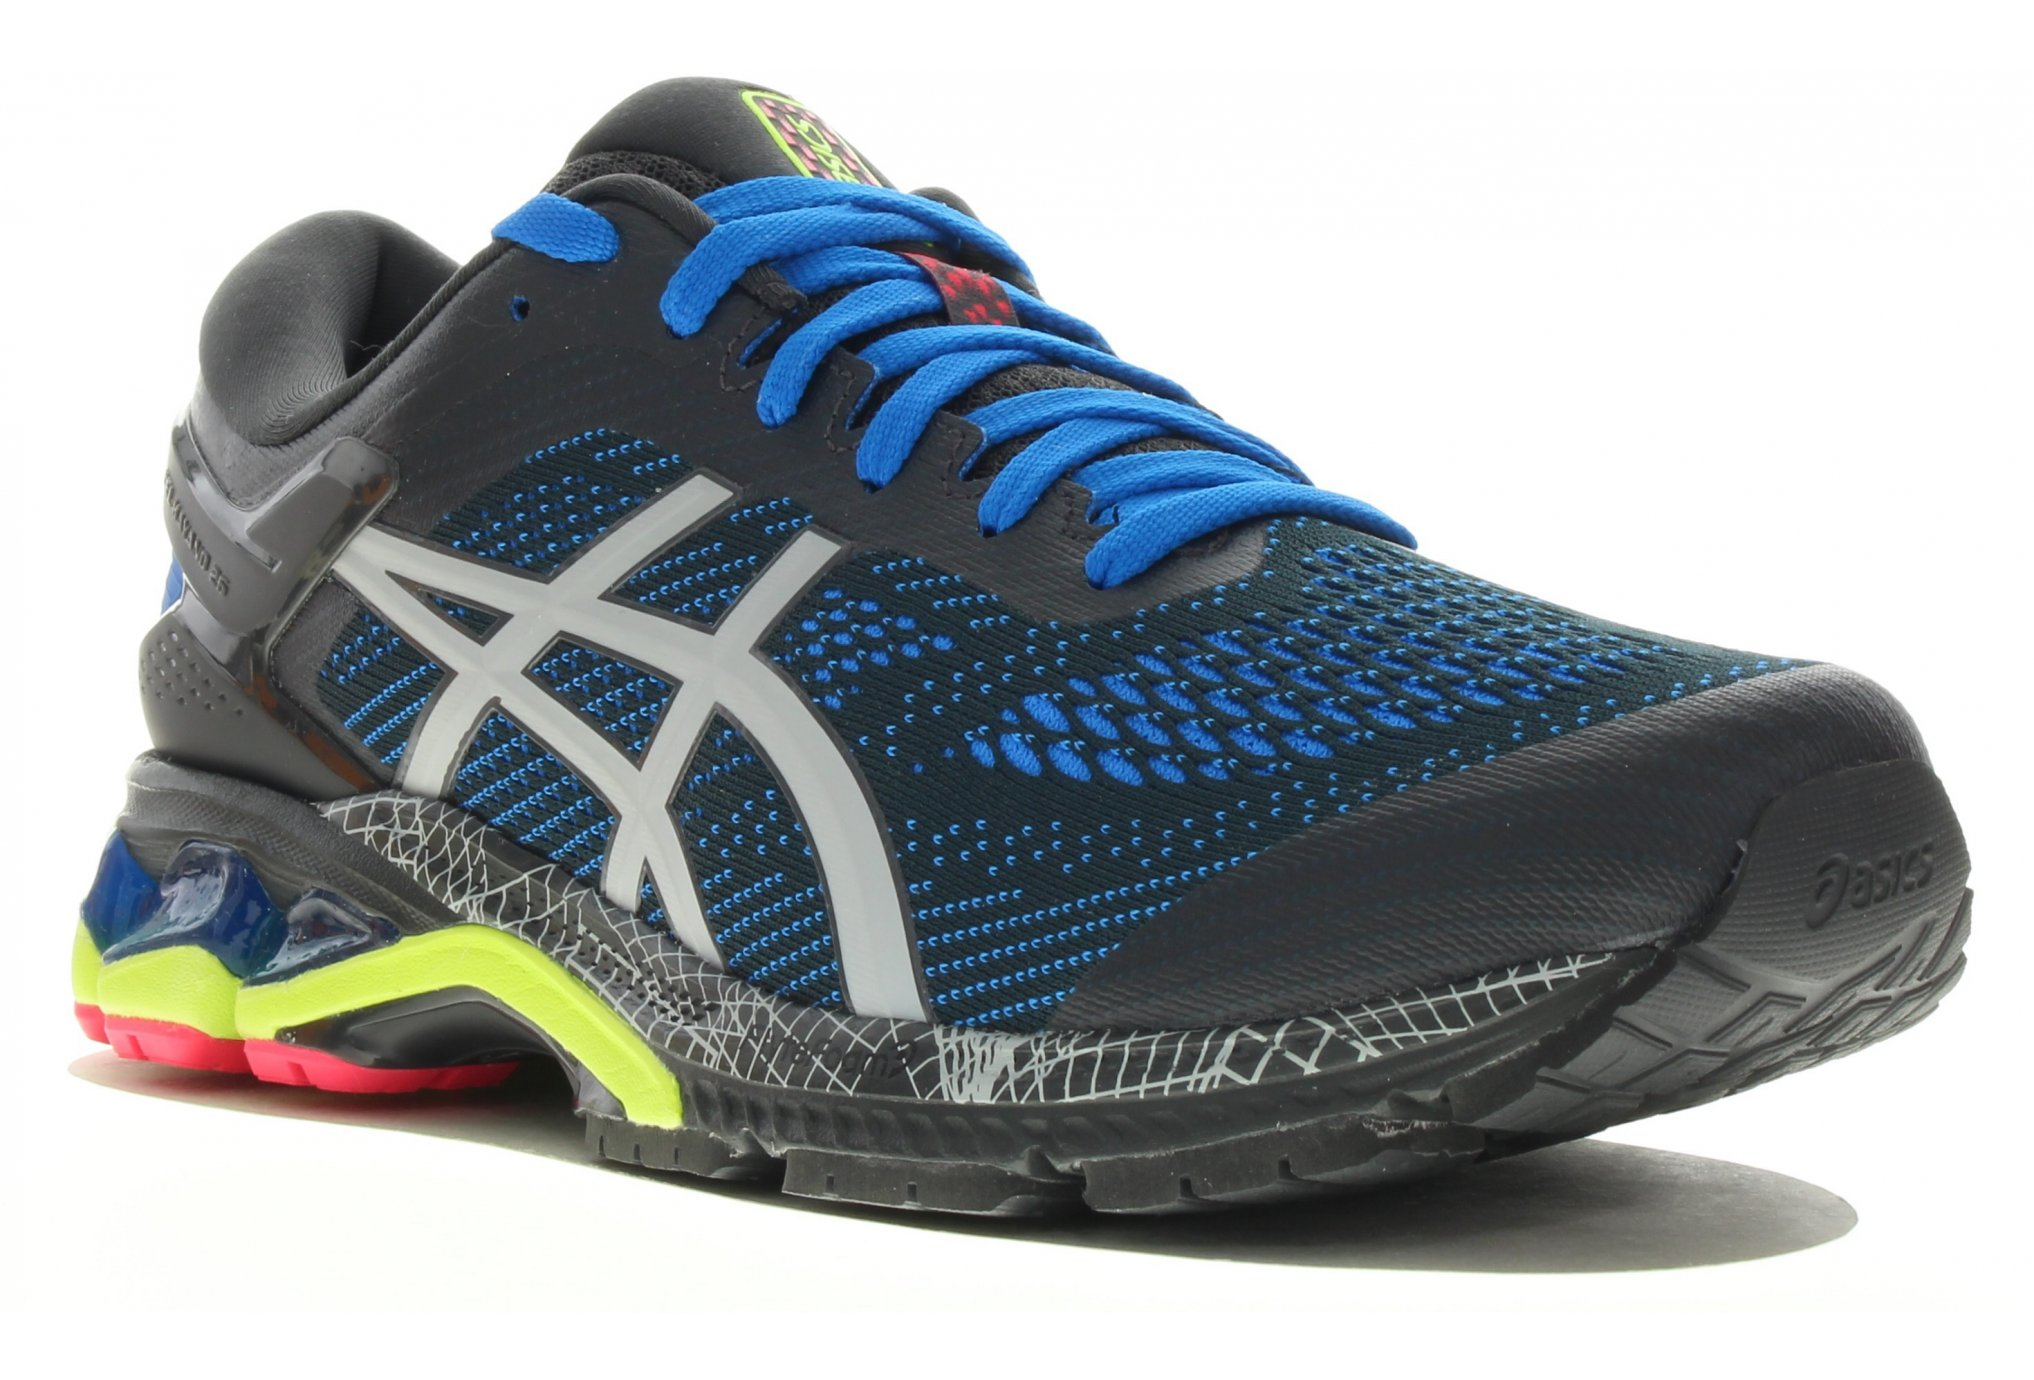 Asics Gel Kayano 26 Expert Chaussures homme